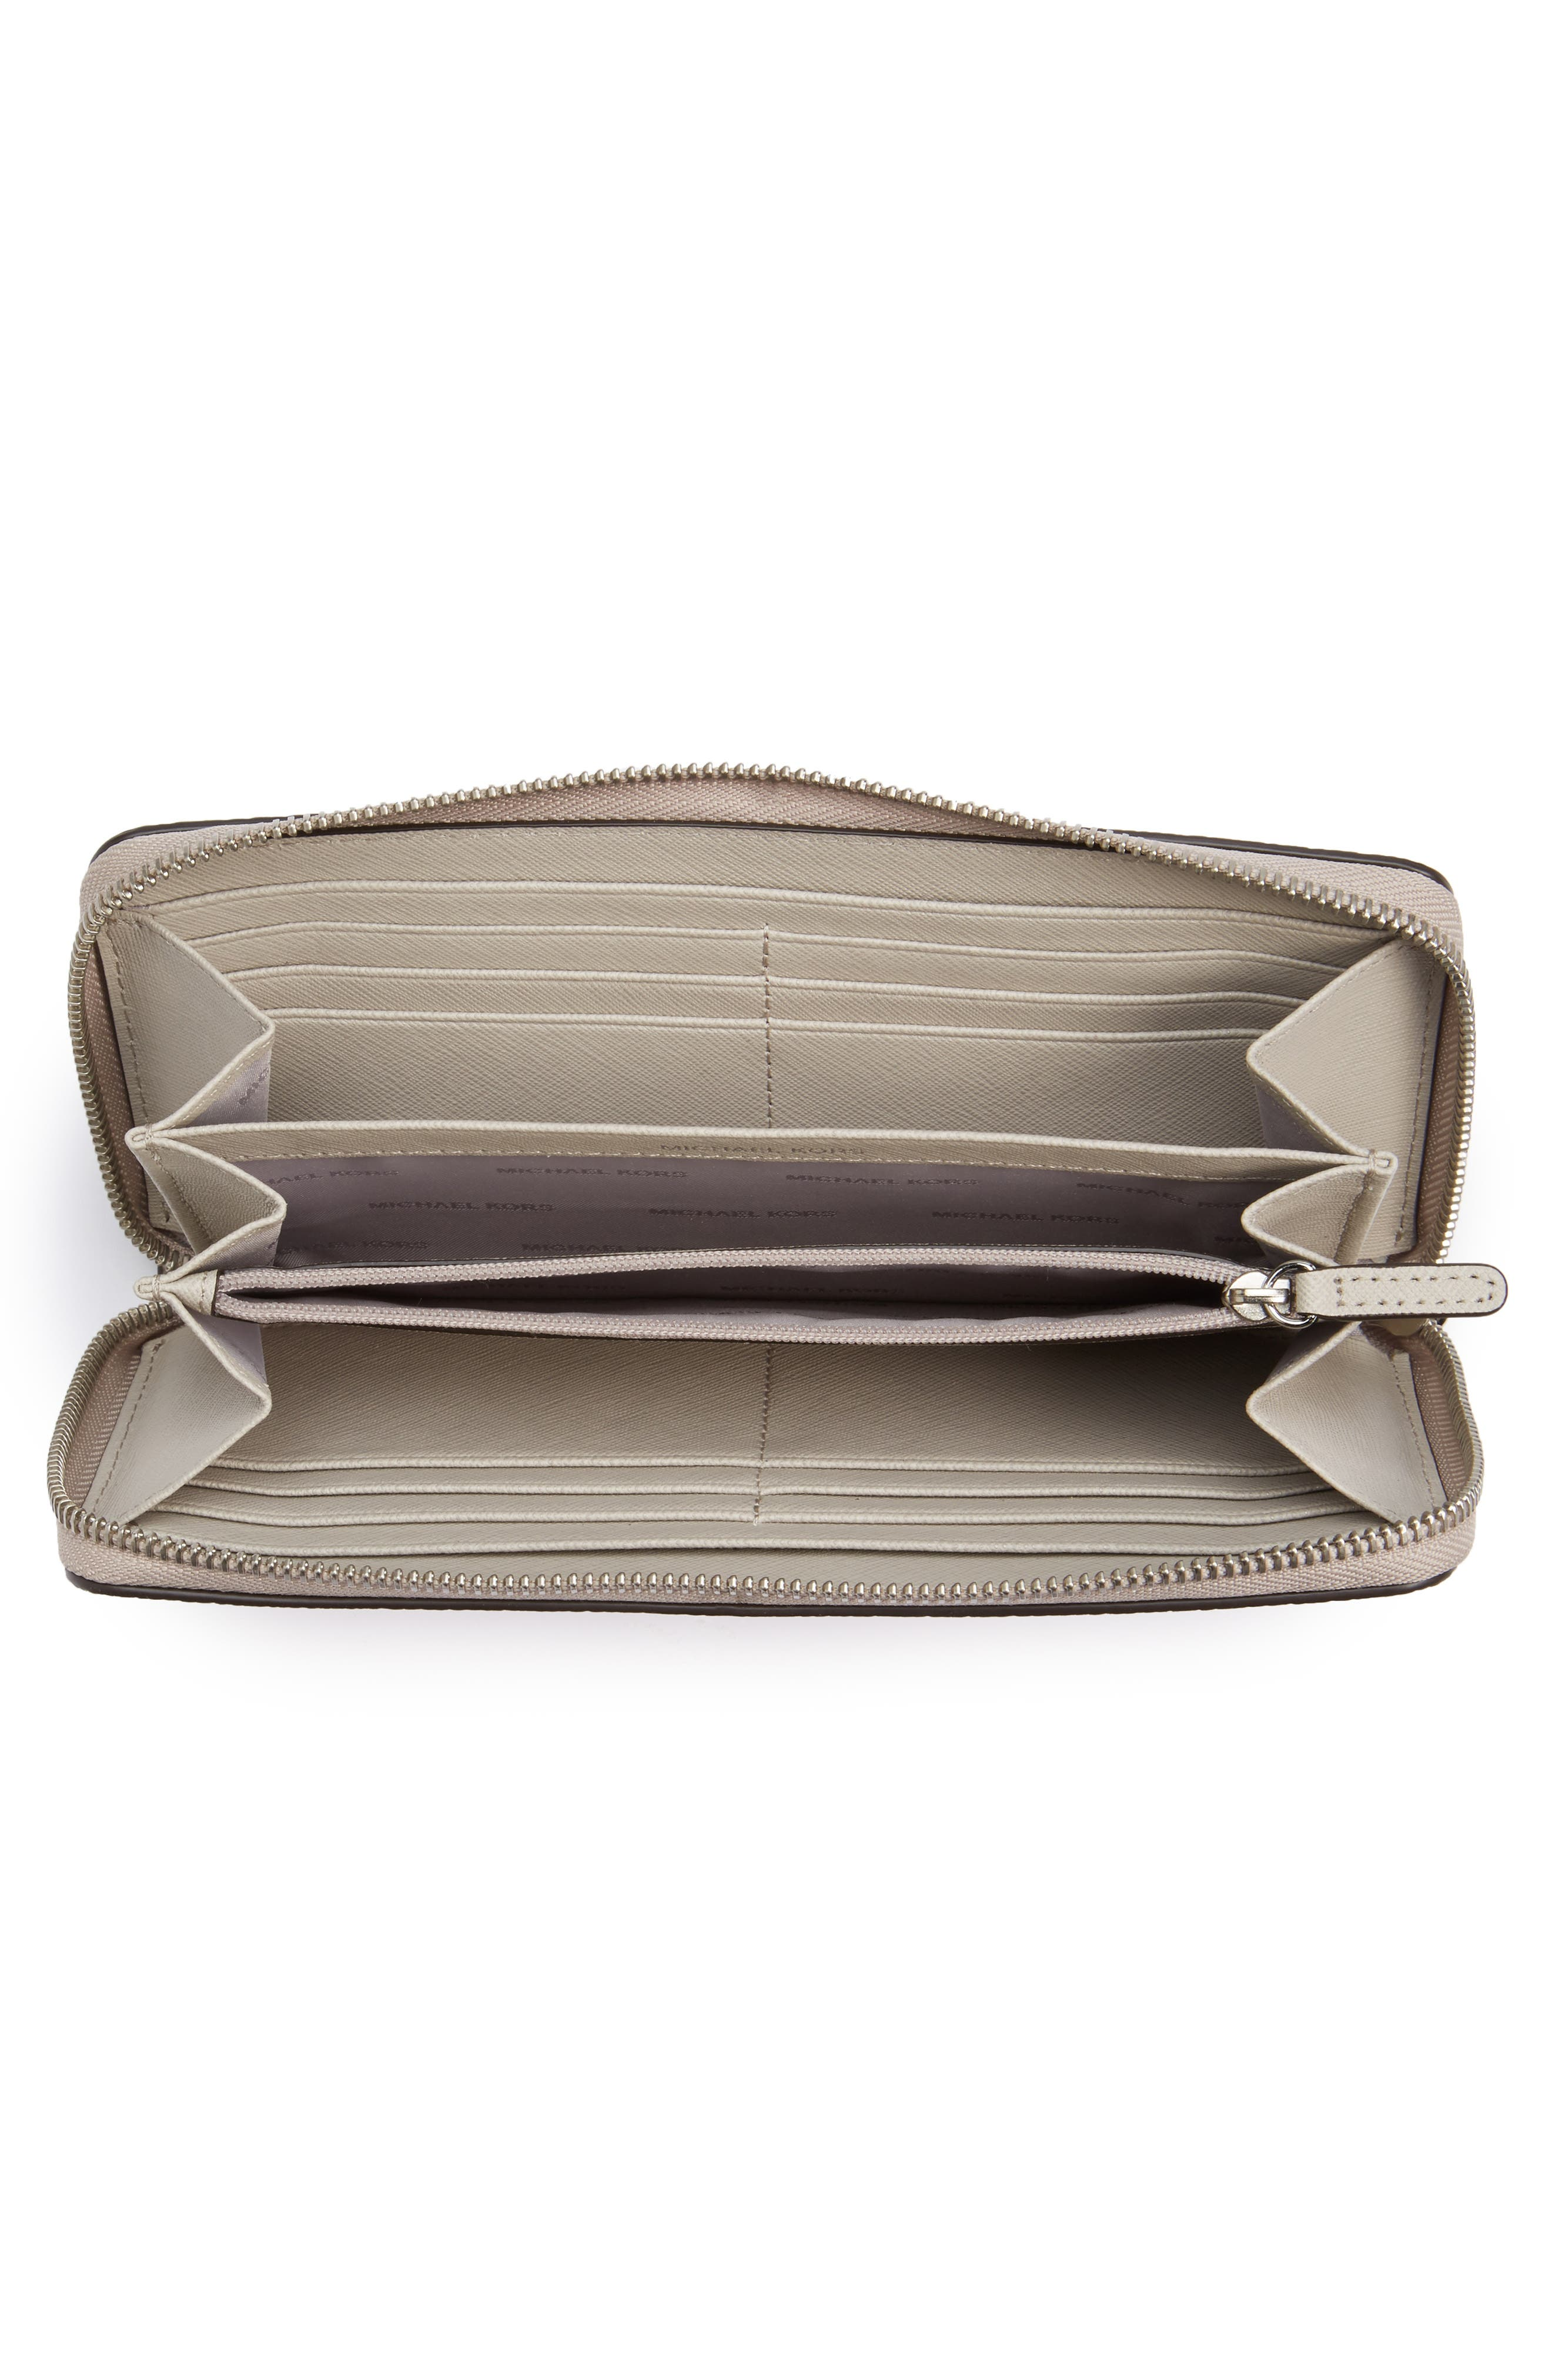 Mercer Leather Continental Wallet,                             Alternate thumbnail 4, color,